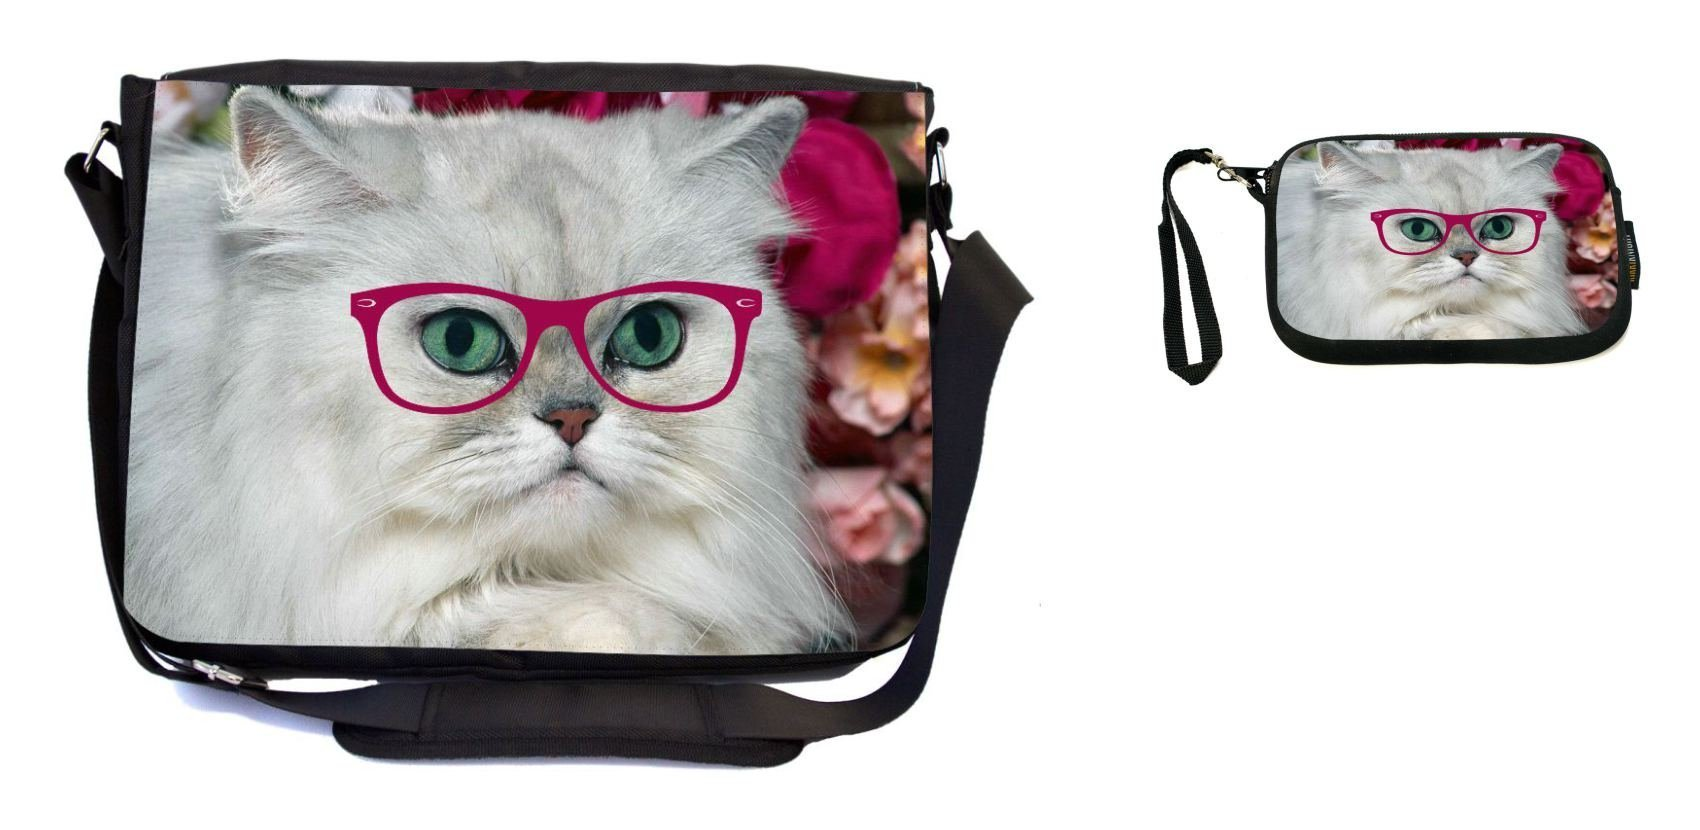 Rikki Knight Hipster White Fluffy Cat with Pink Glasses Design Messenger Bag - School Bag - Laptop Bag - with Padded Insert - Includes UKBK Premium Coin Purse